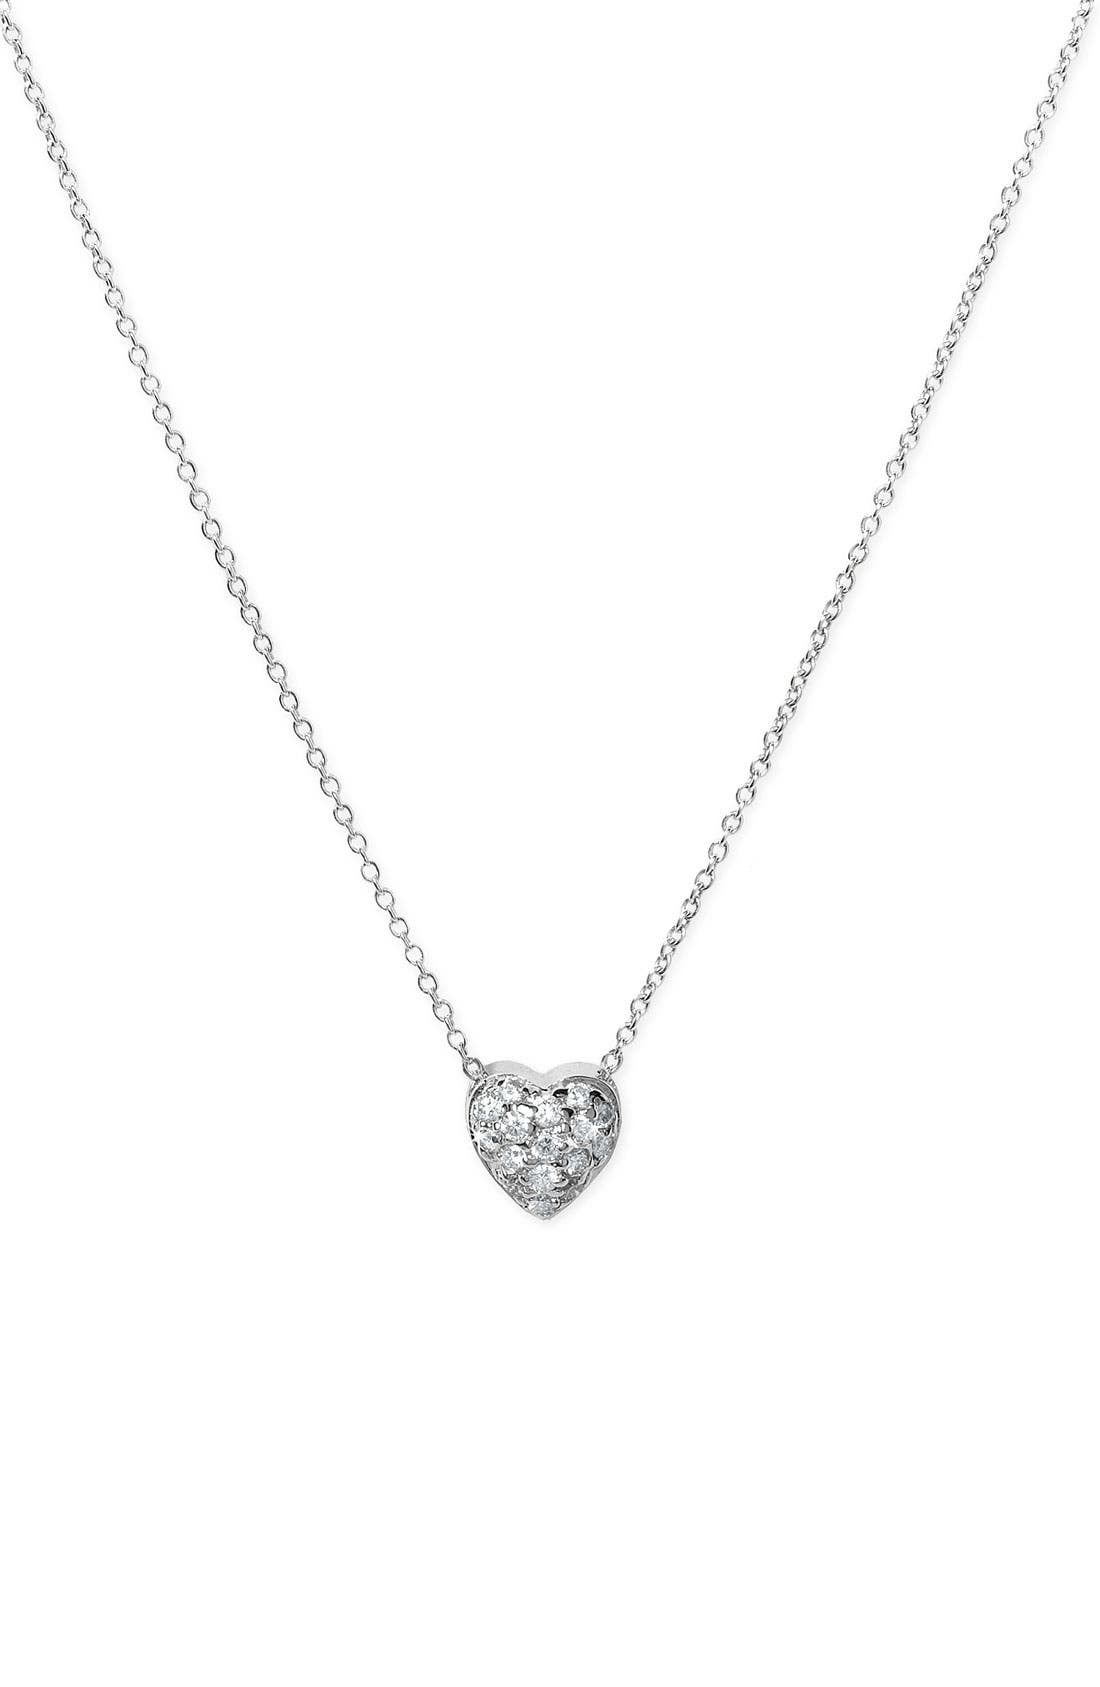 ROBERTO COIN Tiny Treasures Diamond Puffed Heart Pendant Necklace